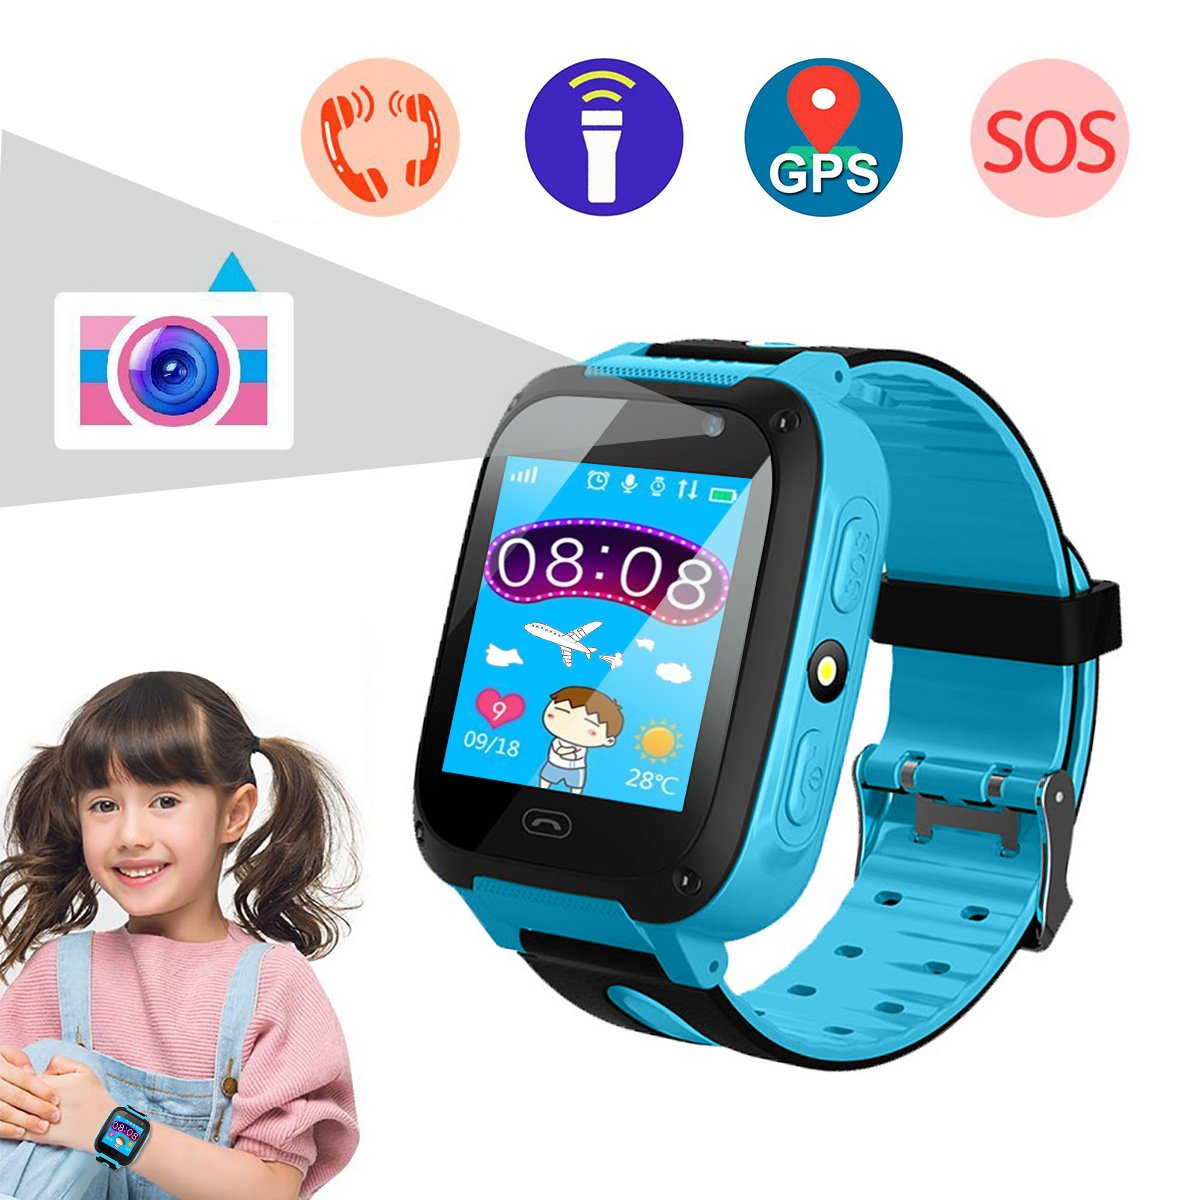 Smart Watch for Kids, Kids Phone Watch with Camera, Qilampe GPS Tracker Game Watch Support Calls Touchscreen Anti-lost SOS Bracelet Children Holiday Birthday Gifts(SIM Card Not Included) by Qilampe